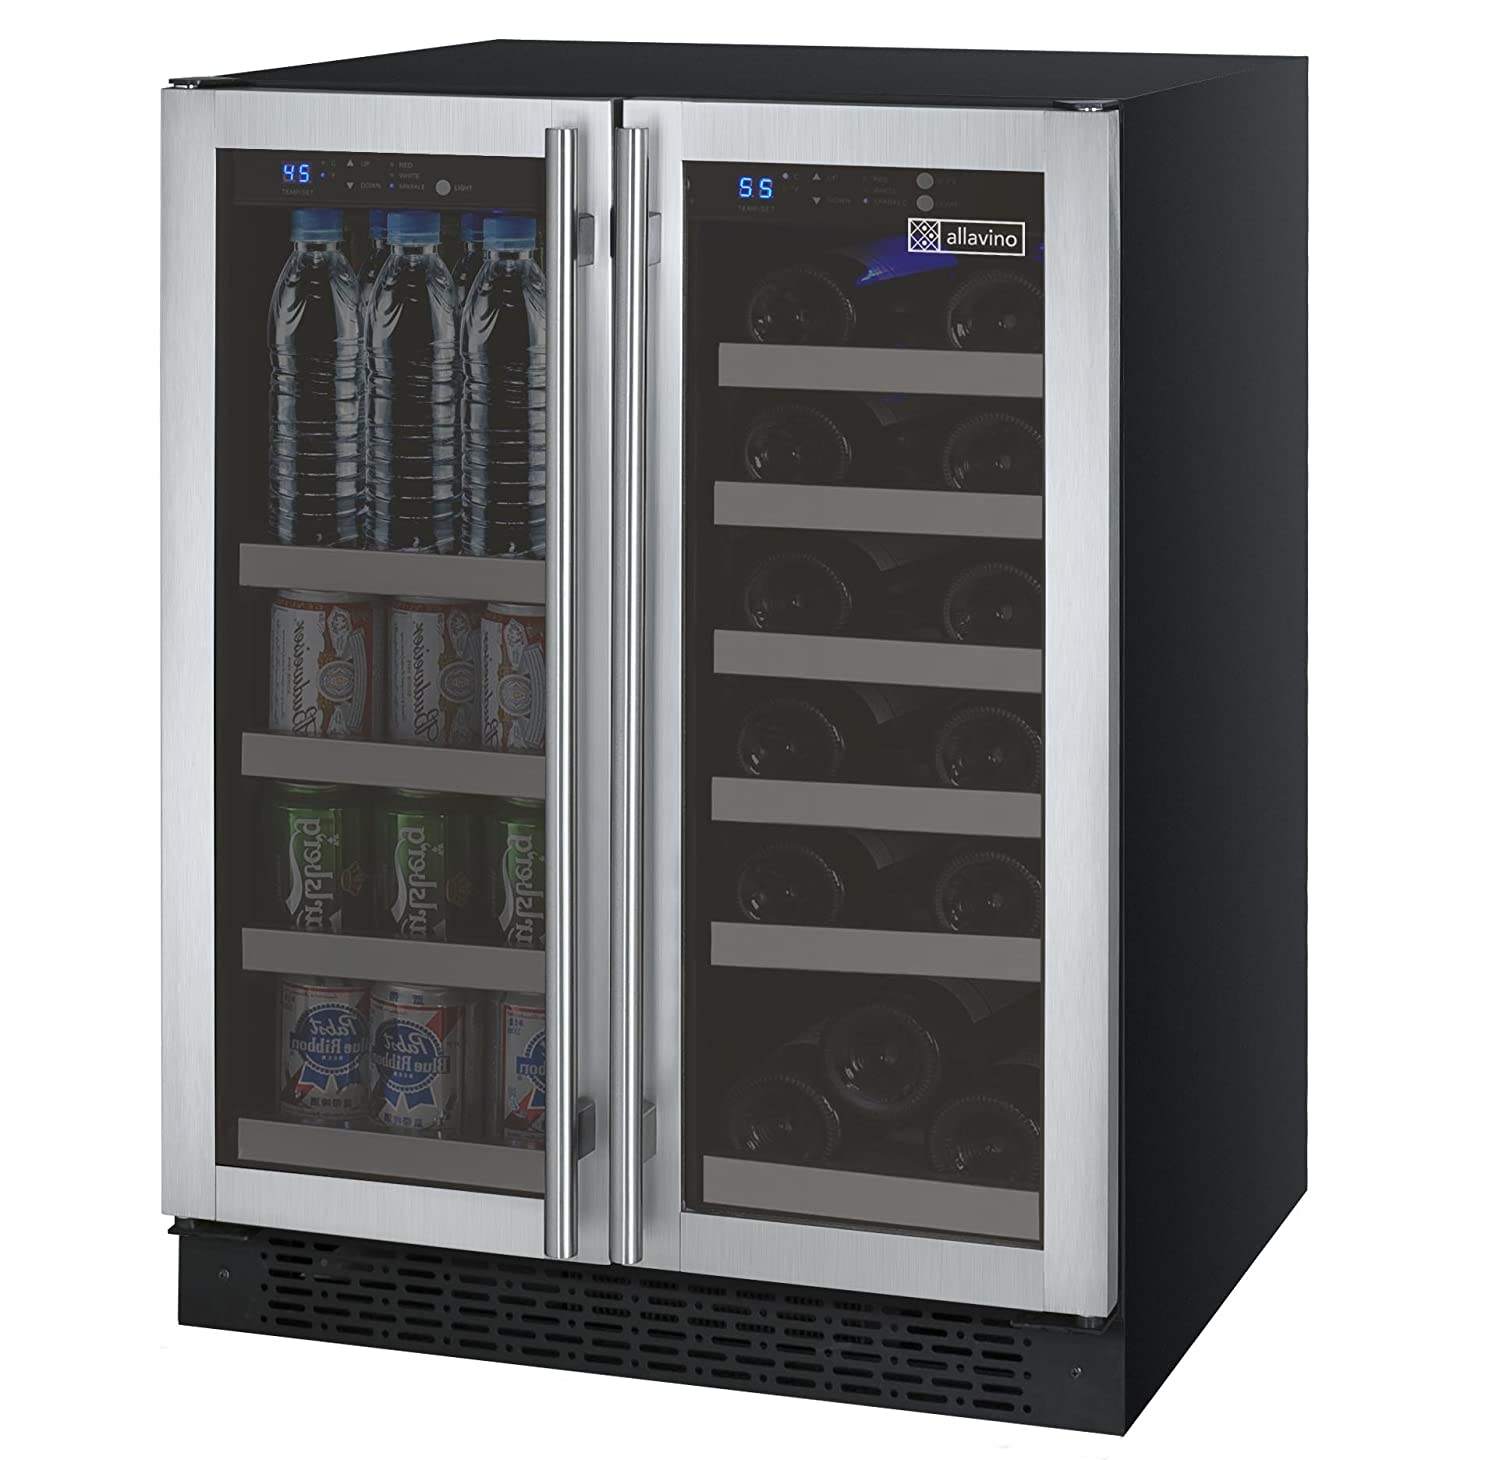 dual zone appliances whirlpool countertops lowes wine steel refrigerator at chiller web chillers com bottle beverage cooling pl shop countertop centers coolers stainless original tif